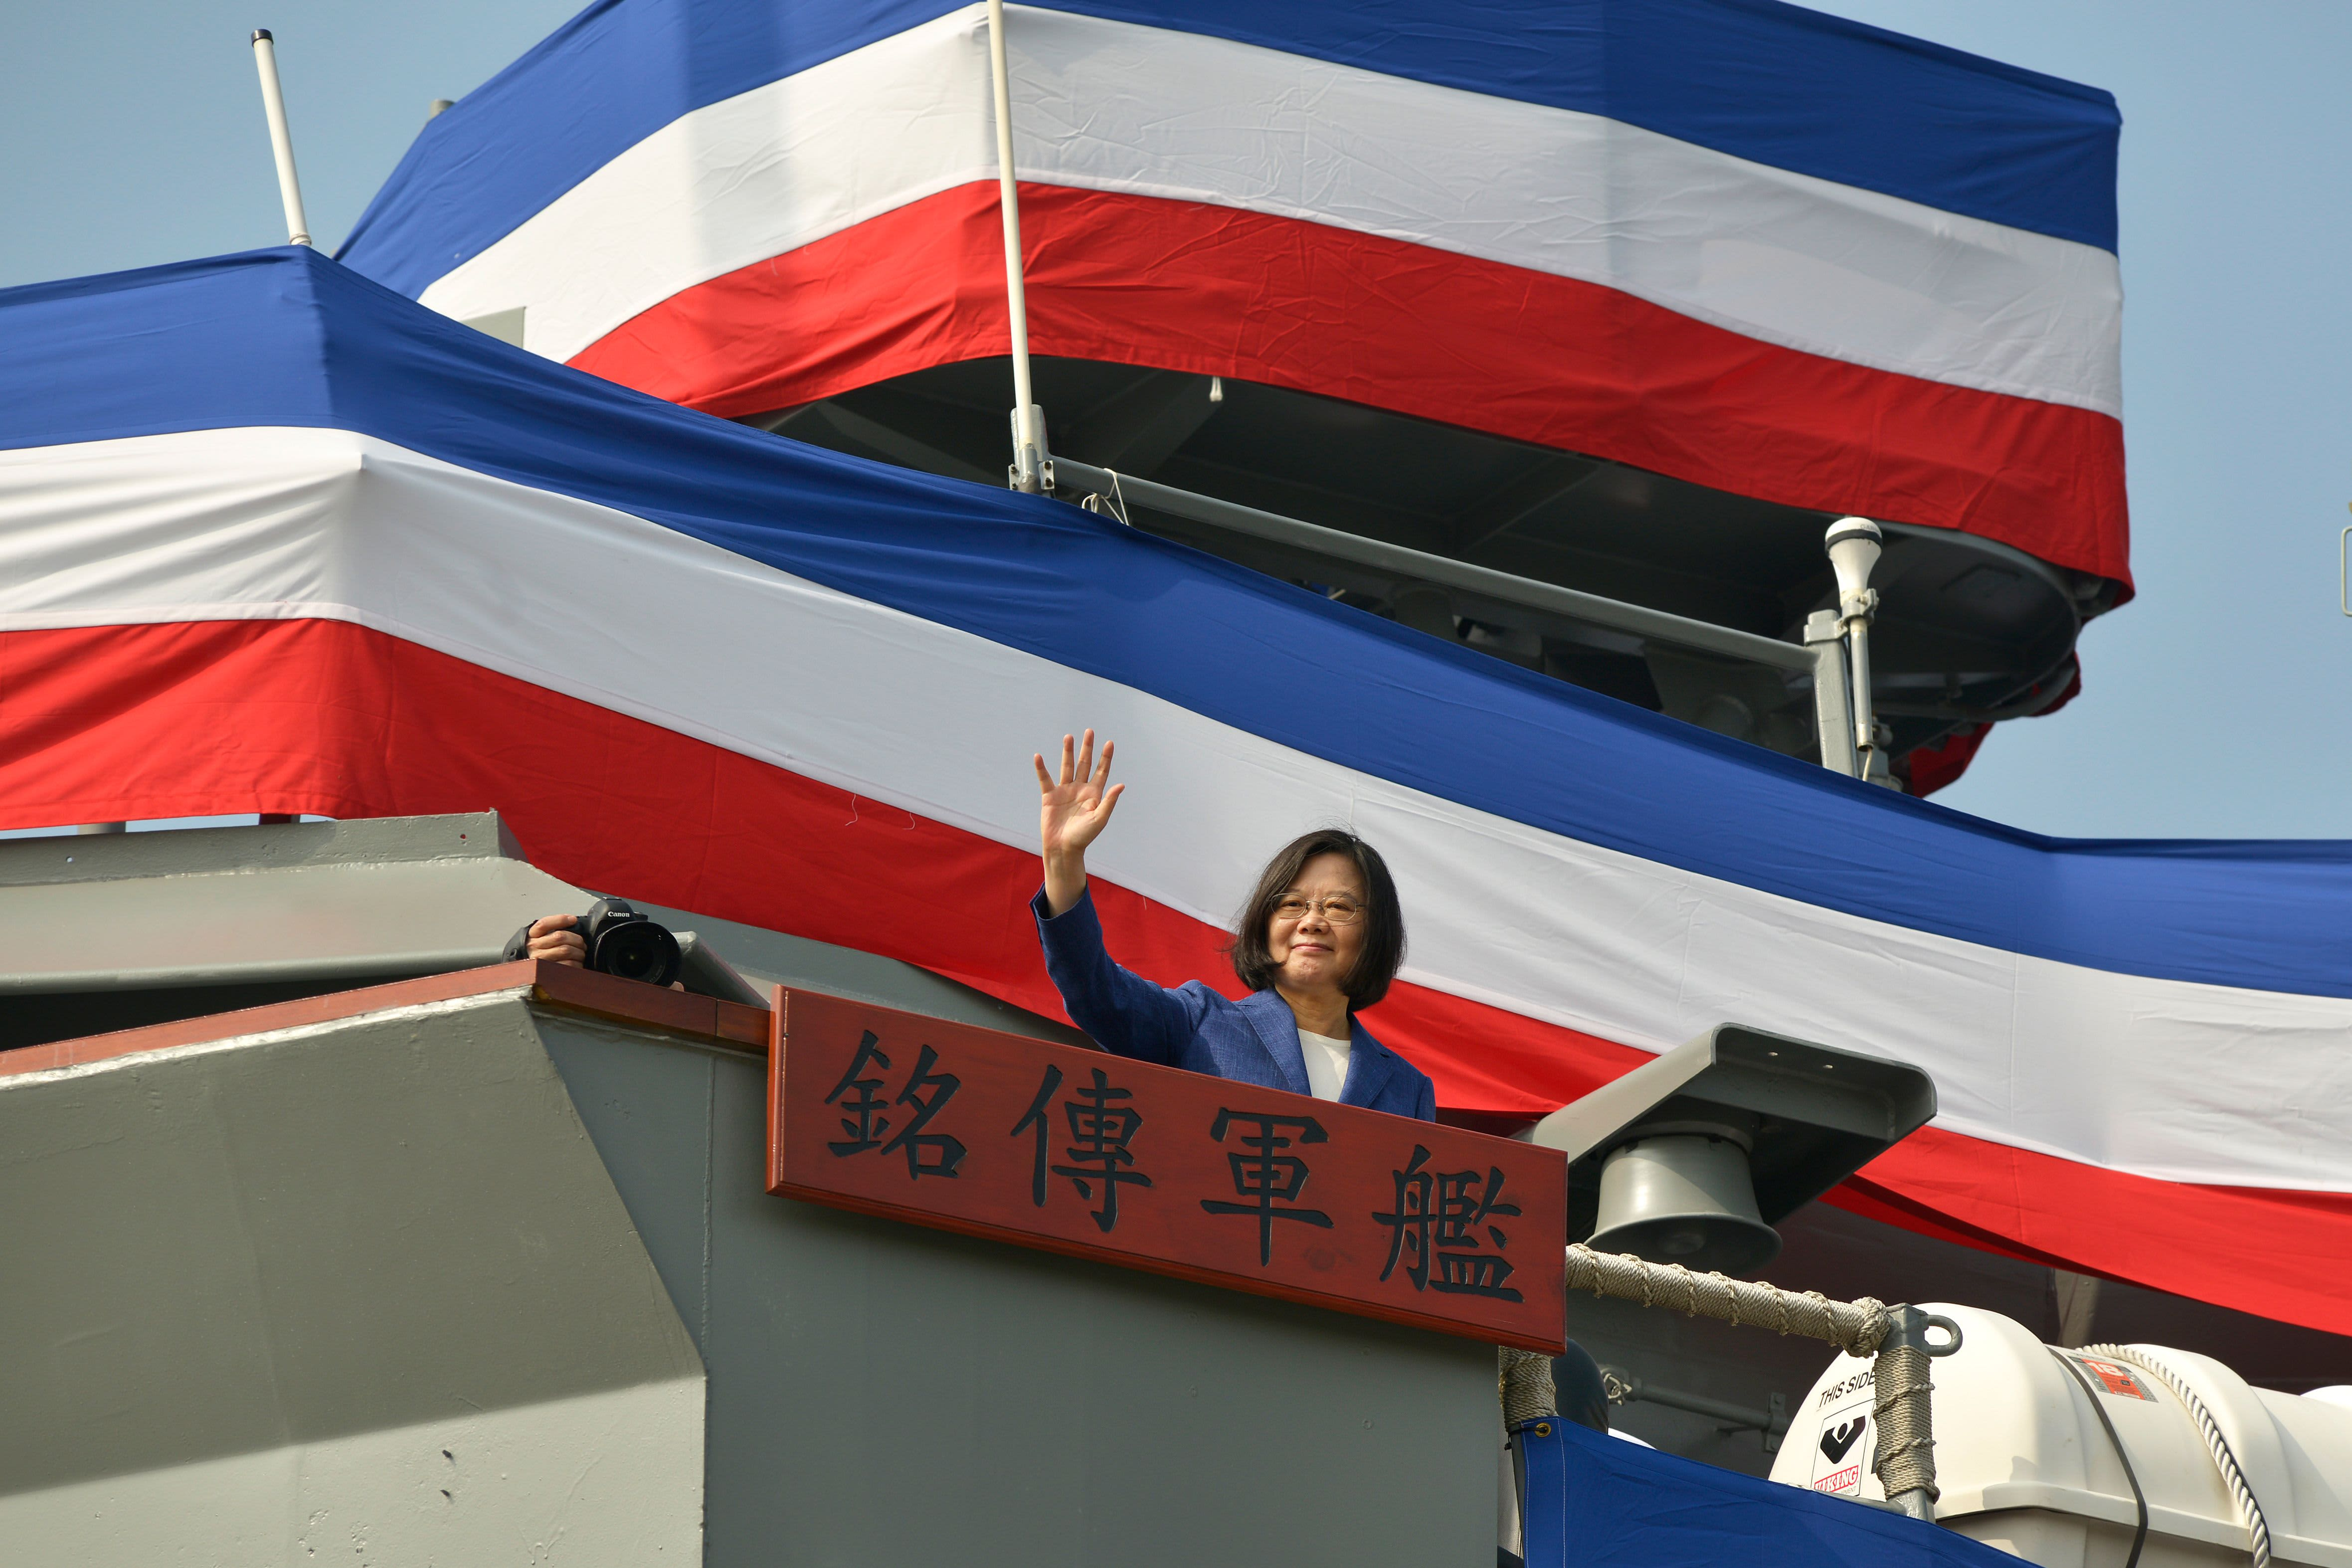 As US-China relations sour, Taiwan's value as a 'chess piece' may rise